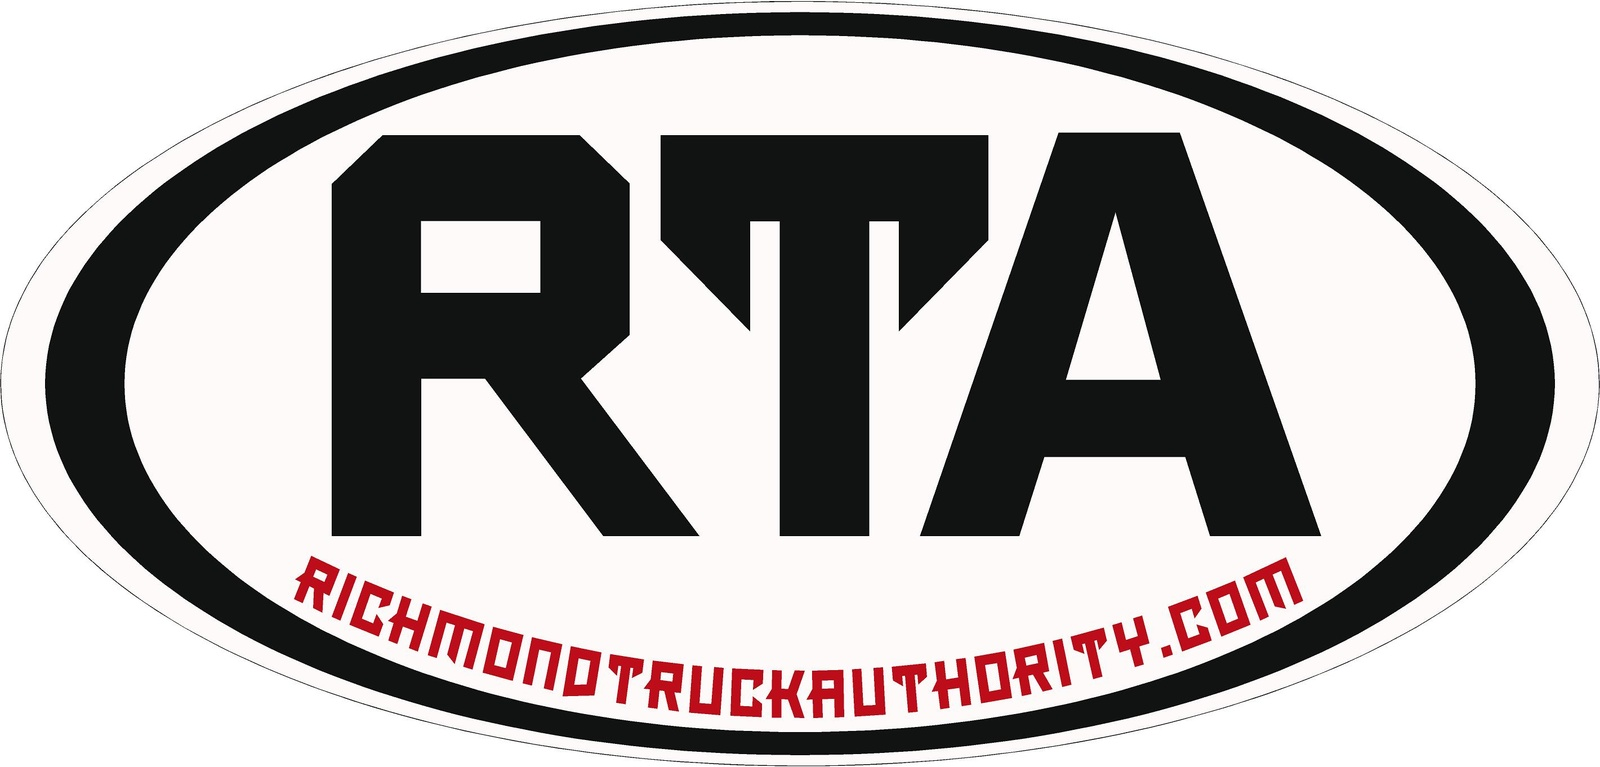 Richmond Truck Authority - Richmond, VA: Read Consumer ...